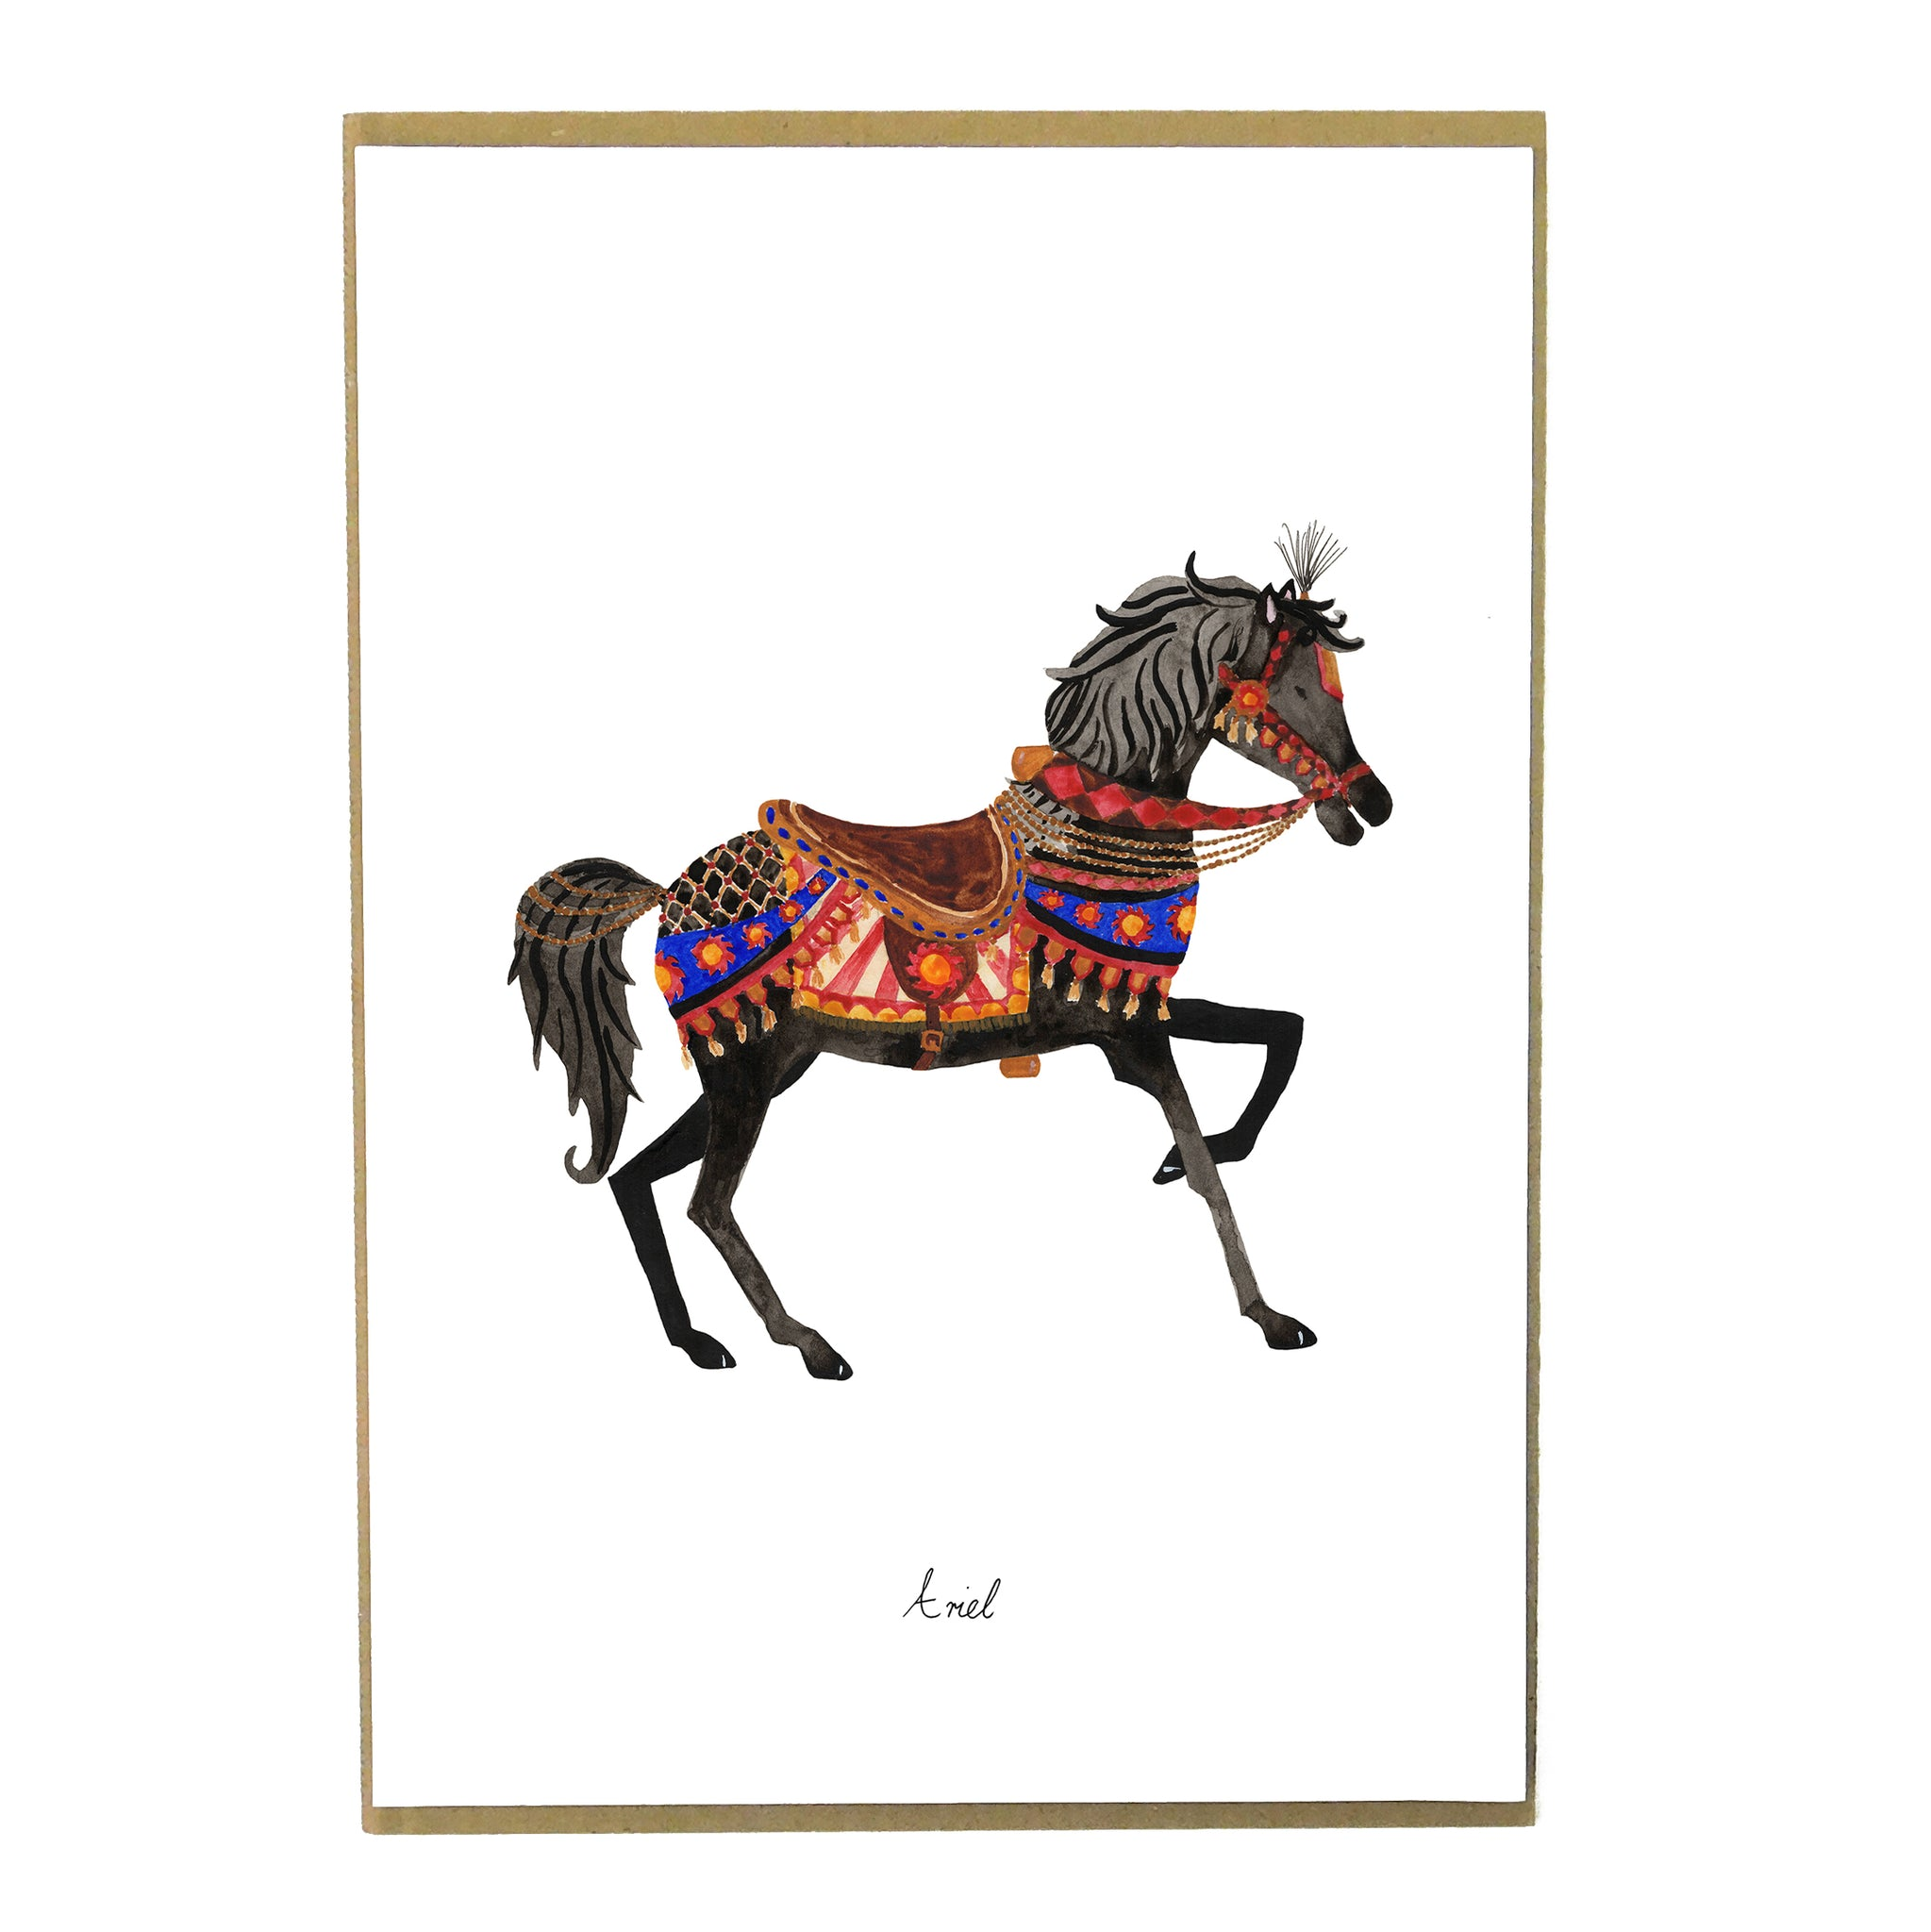 Le Carrousel Ariel The Carousel Horse Art Print Also The Bison